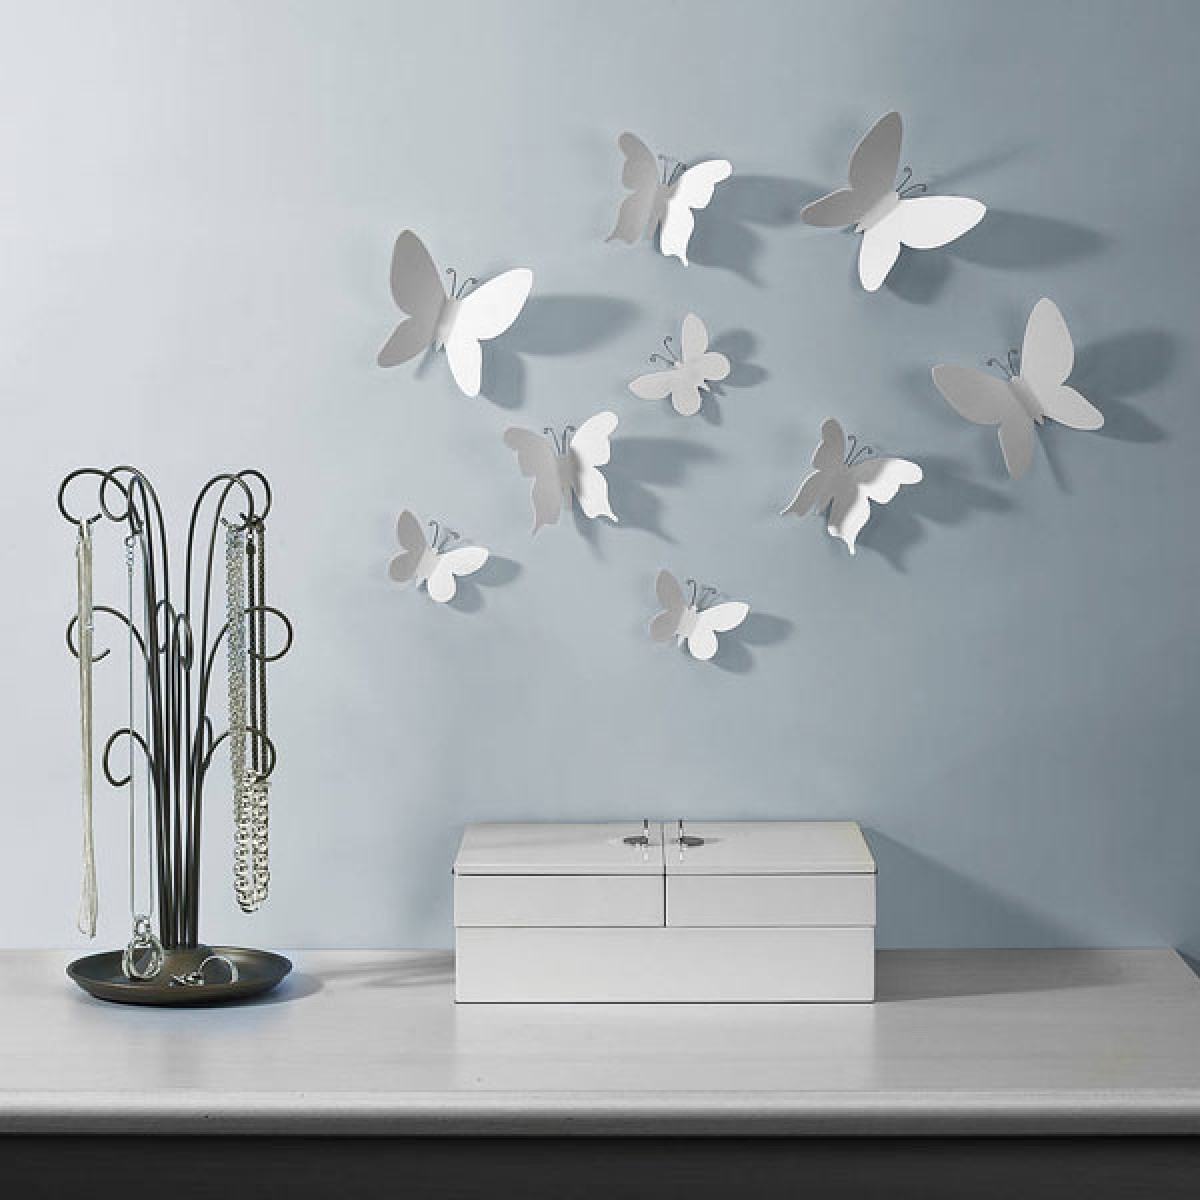 Well Known Umbra Mariposa Wall Decor – Wall Mounted Butterflies With Regard To Umbra 3d Flower Wall Art (View 2 of 15)